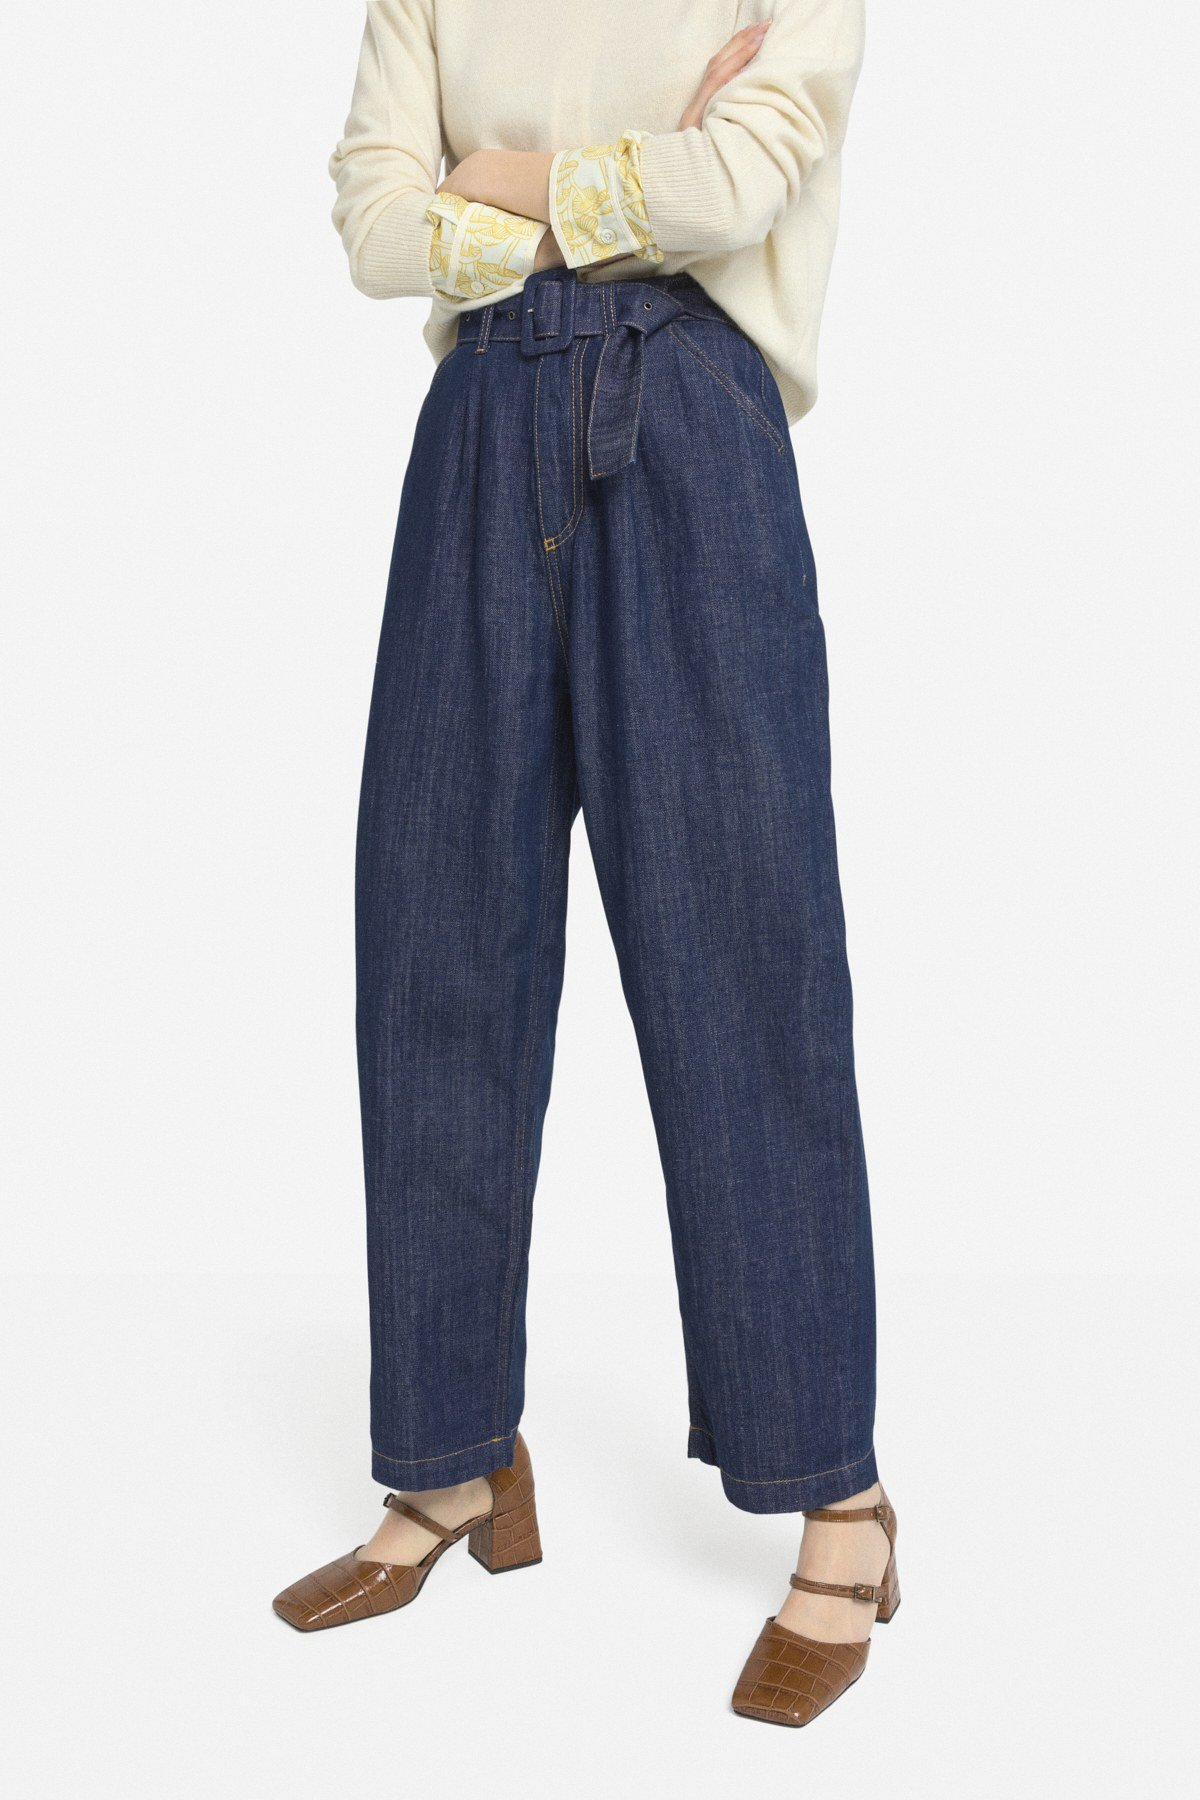 Straight Pince jeans